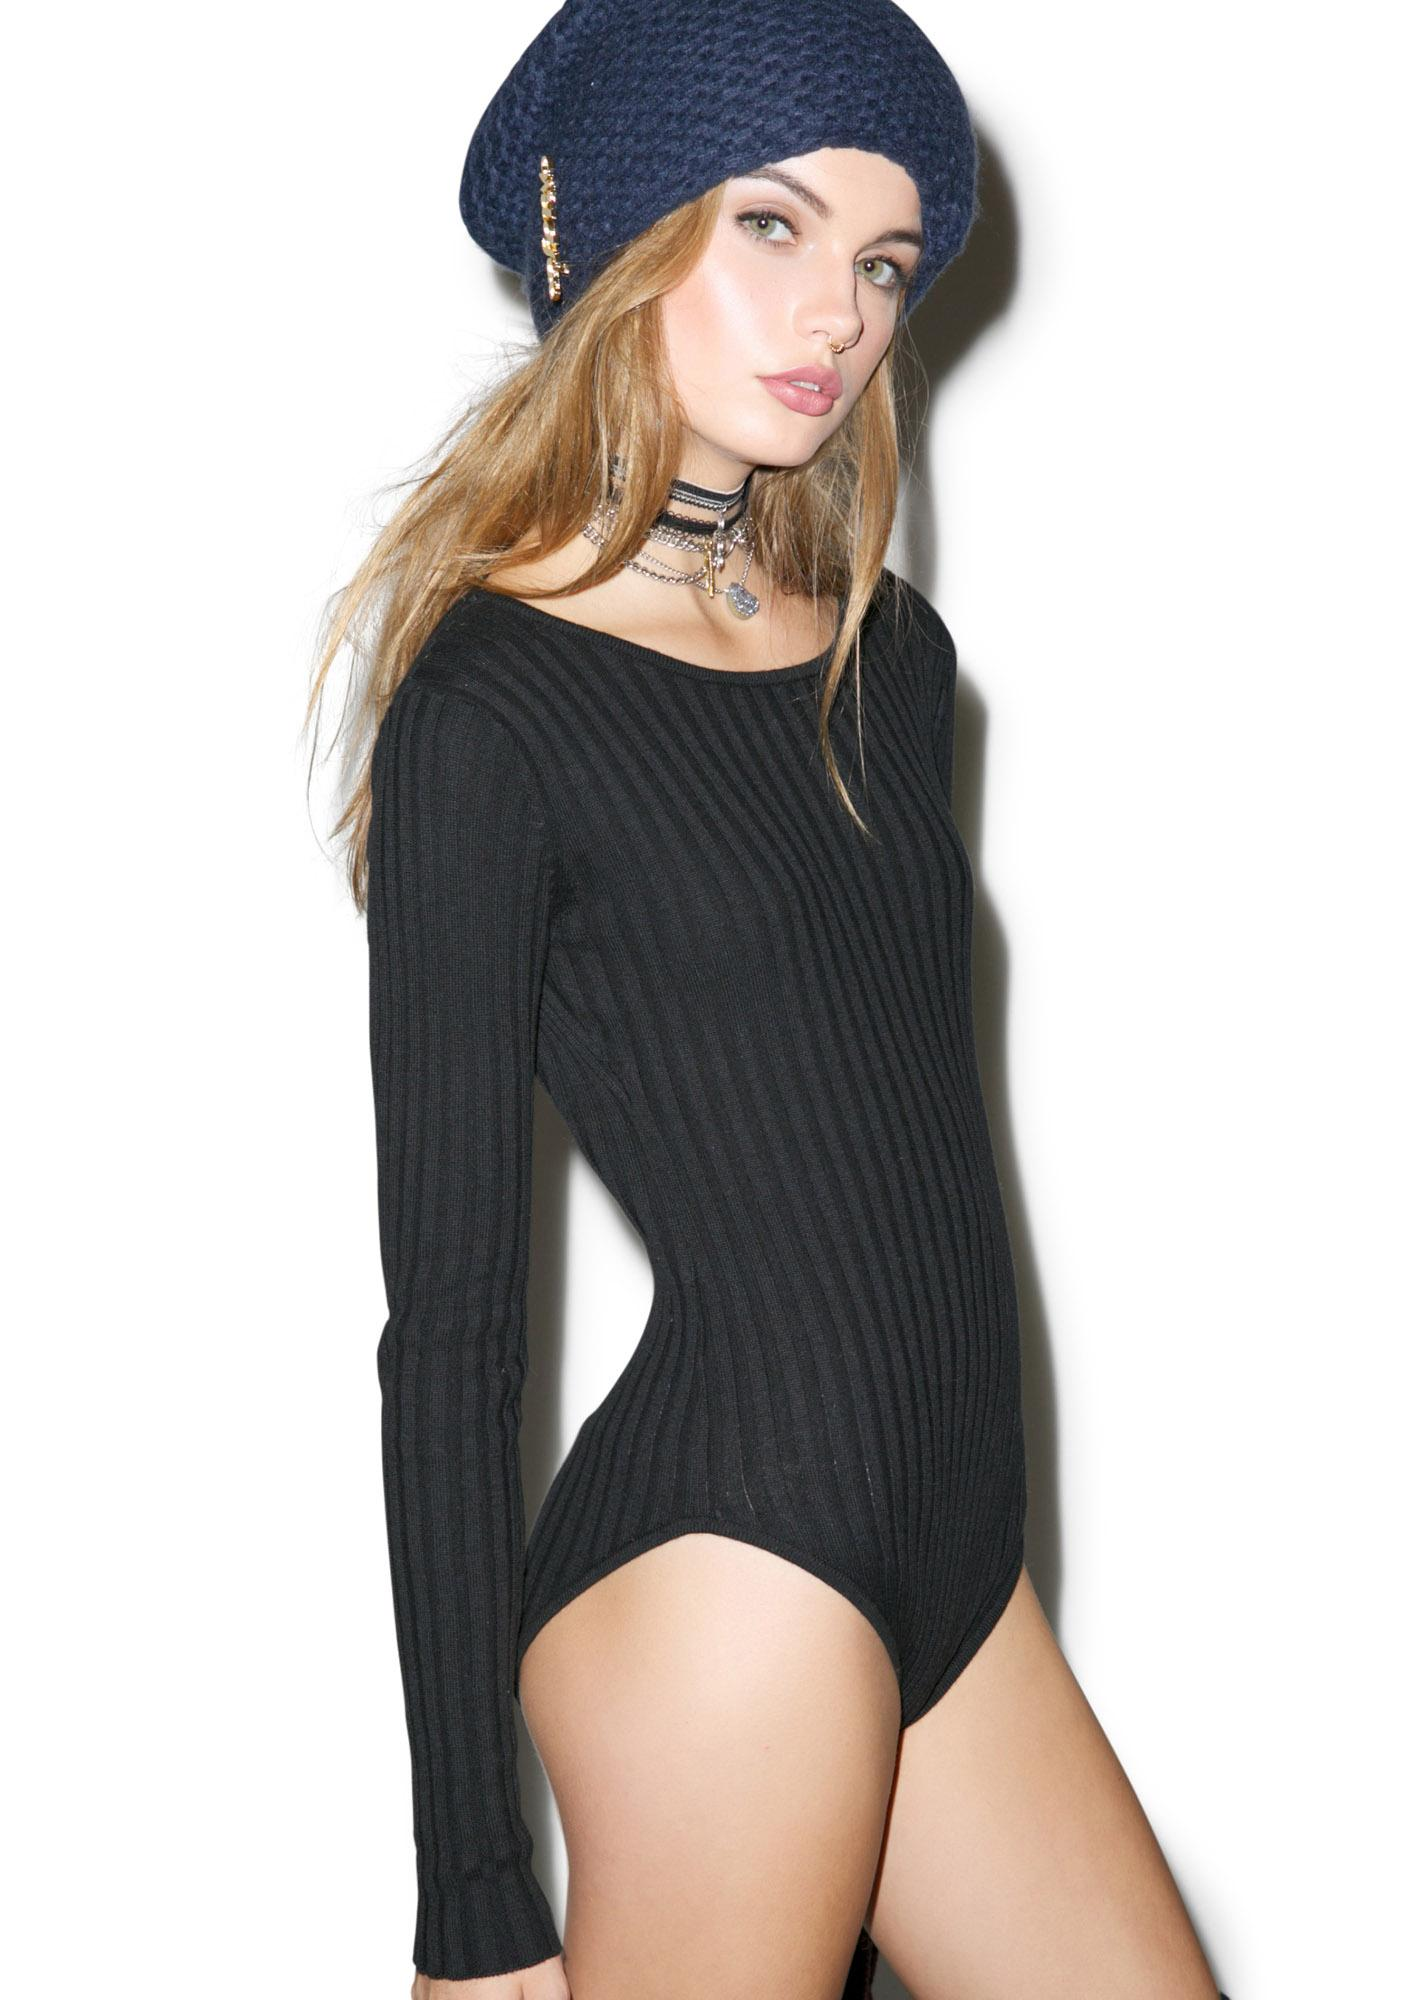 For Love & Lemons Back to Basics Bodysuit